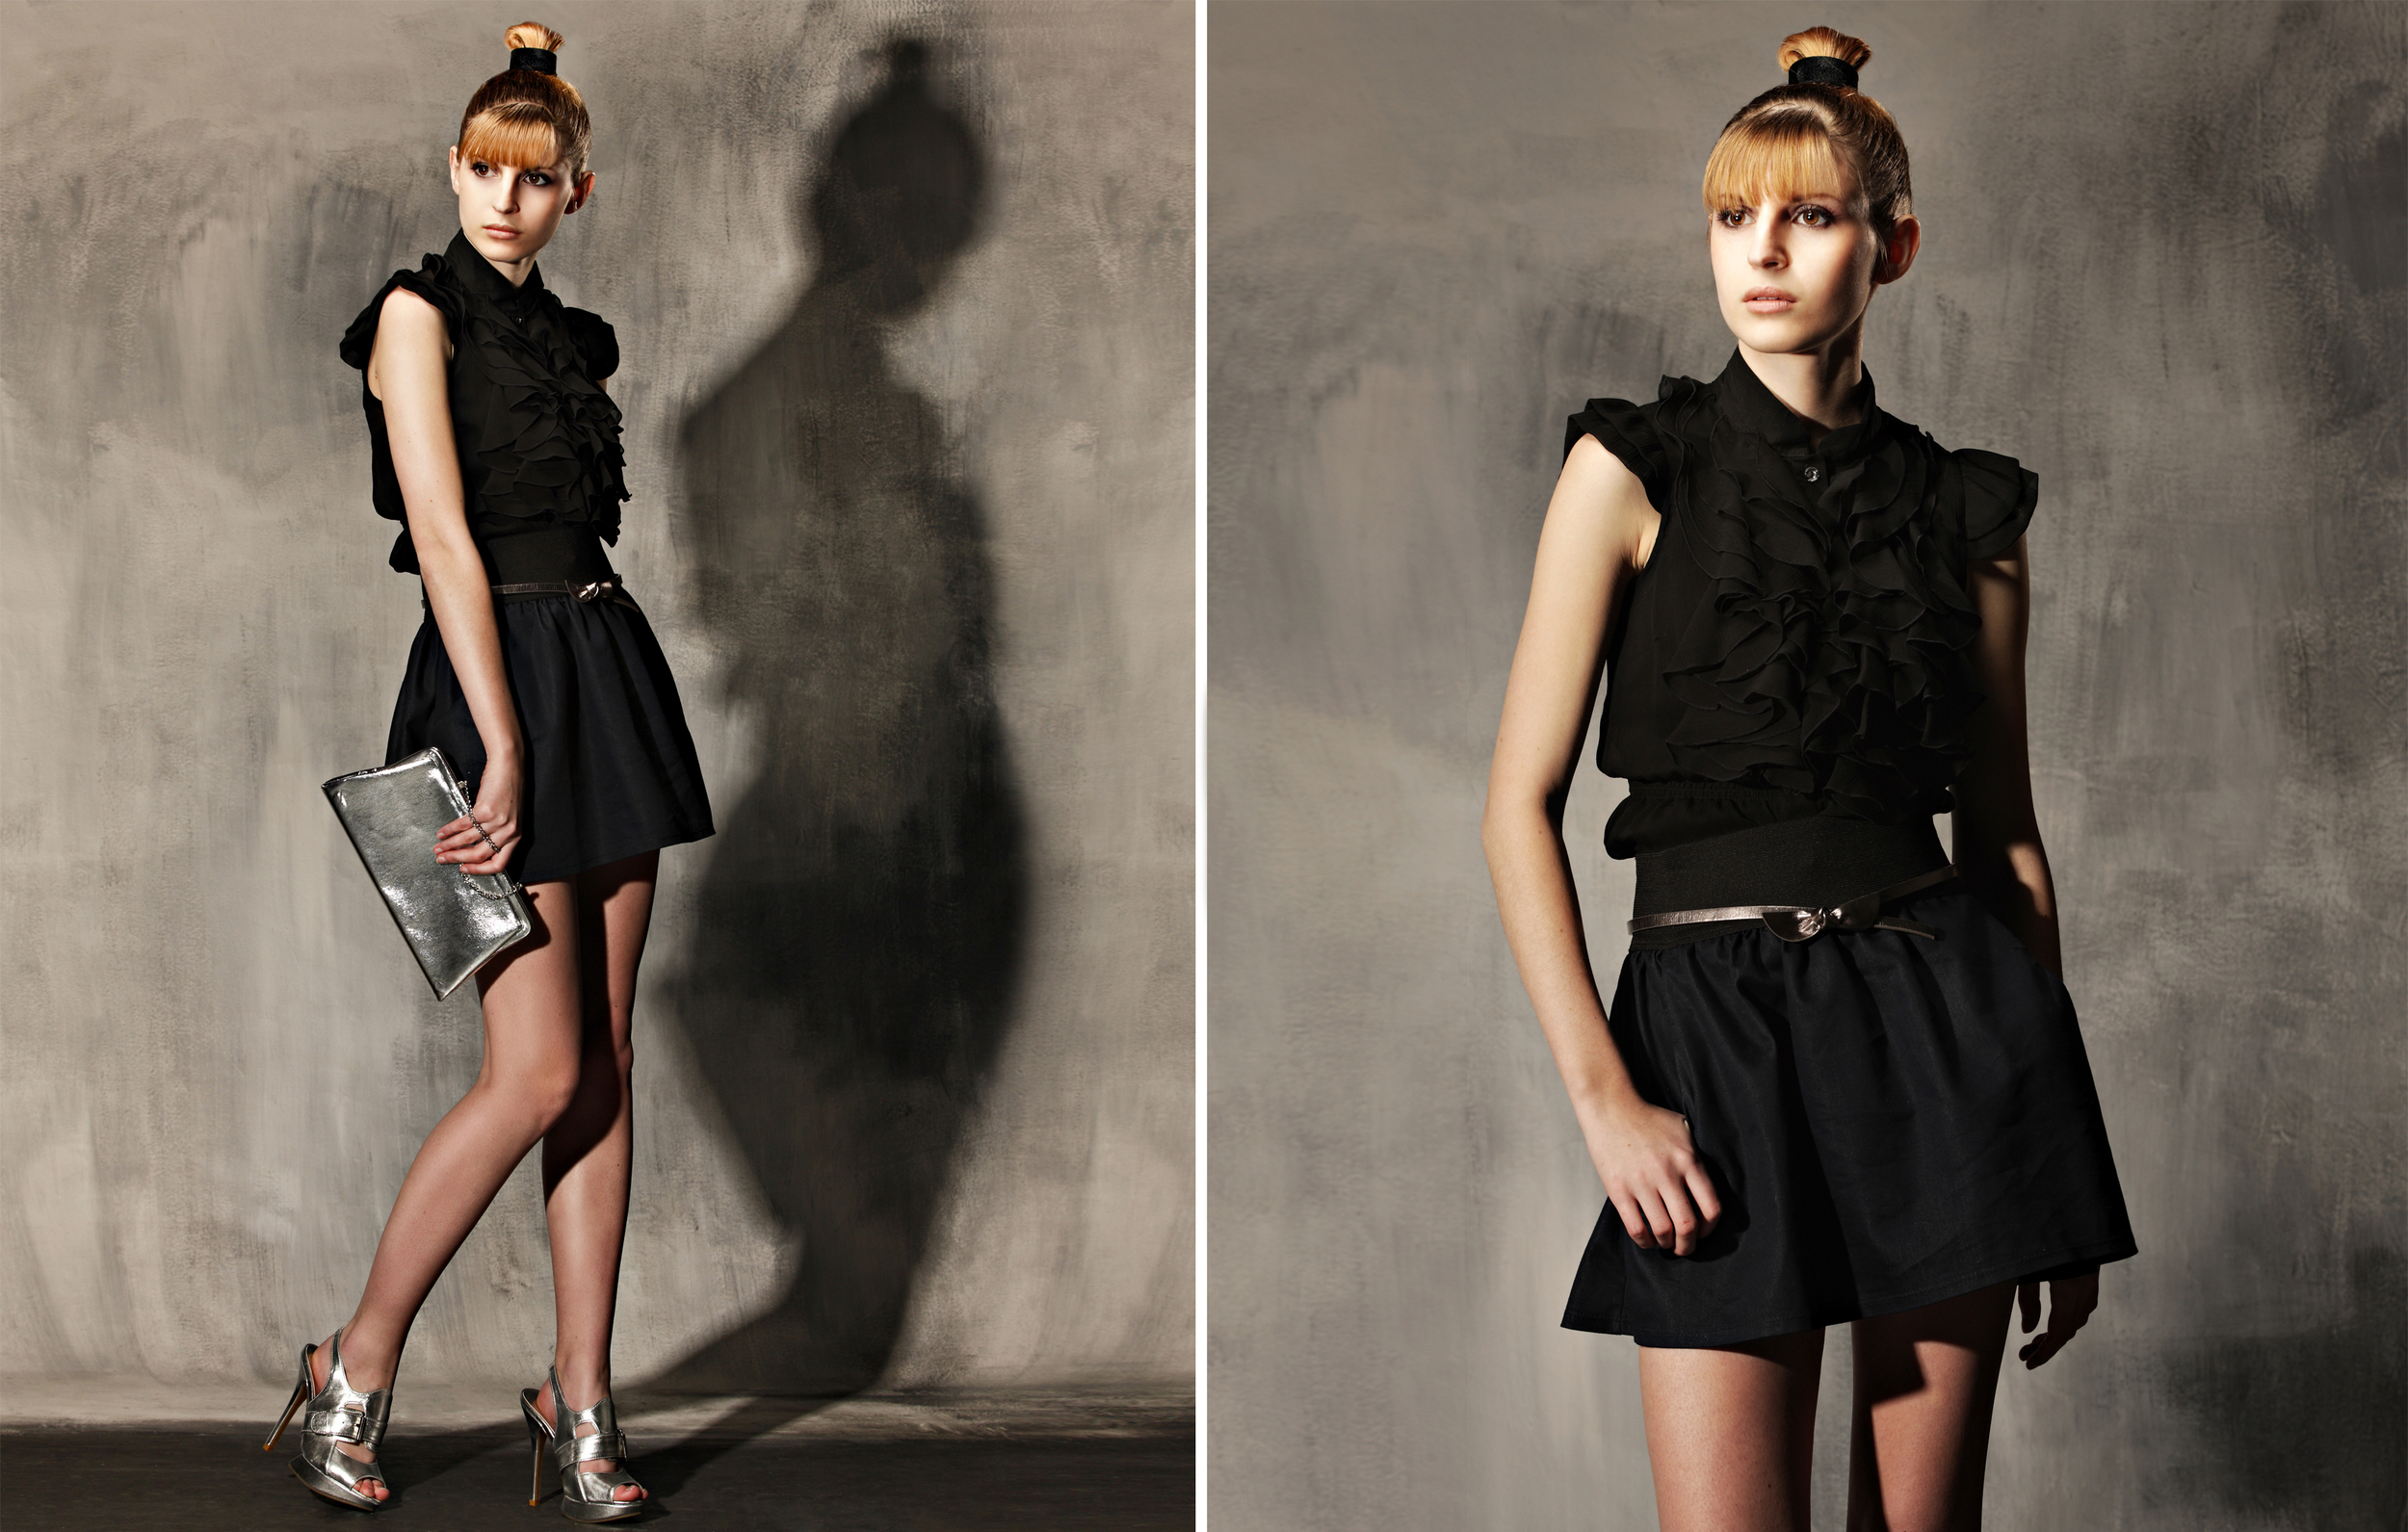 Example of Commercial Photography - Such images fit well into a catalog or an advertisement.